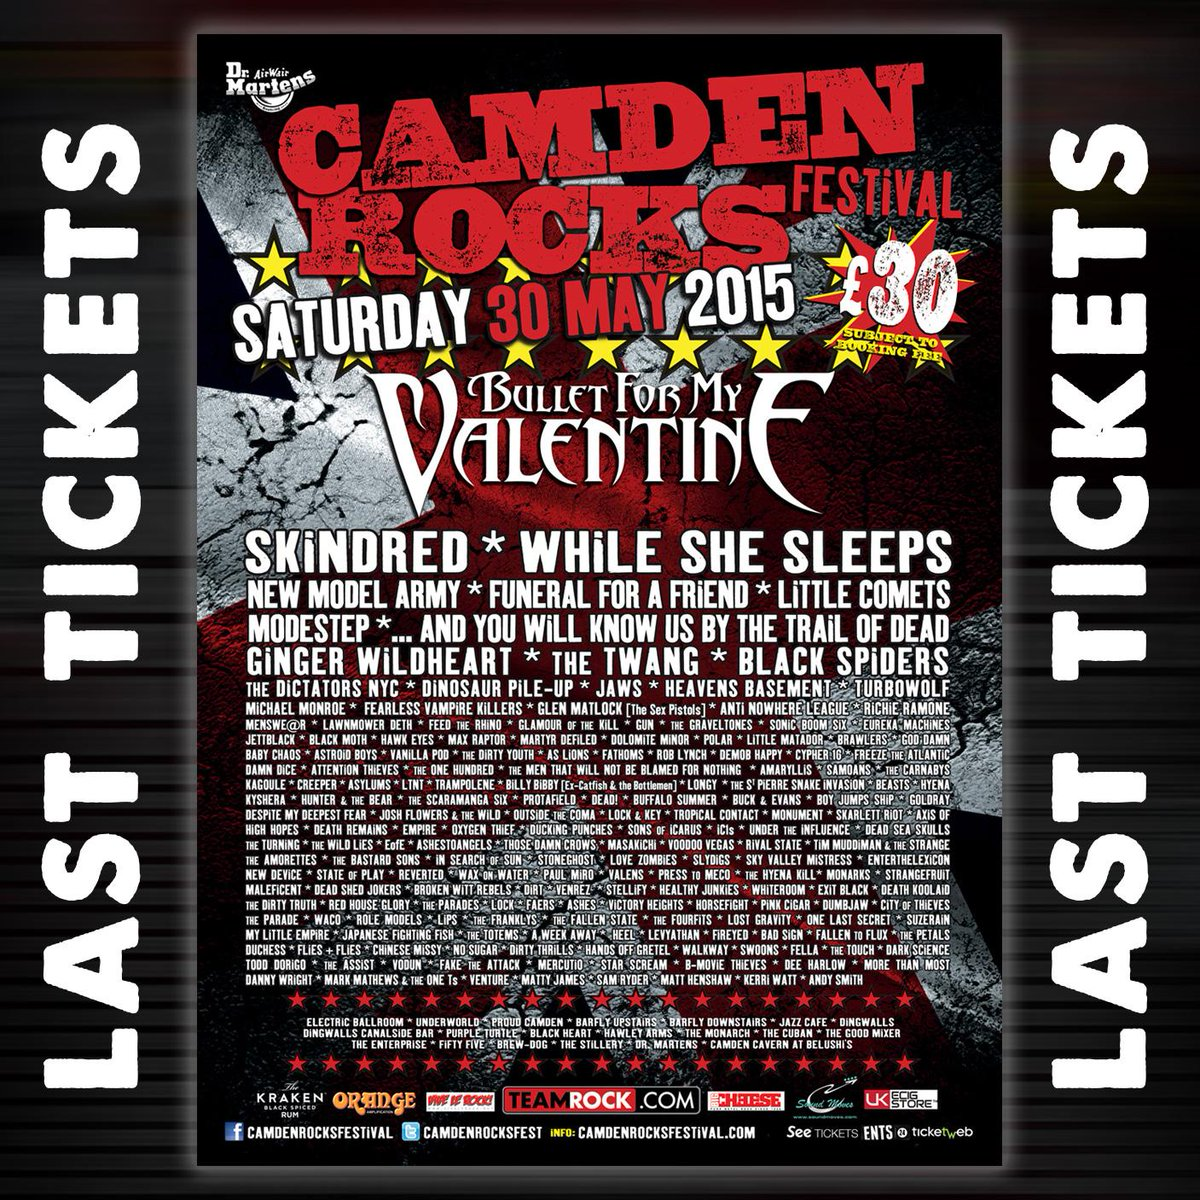 LAST REMAINING @CamdenRocksFest TICKETS // It's about to sell out! At > http://t.co/9v86HpQcZF - Lineup: http://t.co/oG41ILZmgp